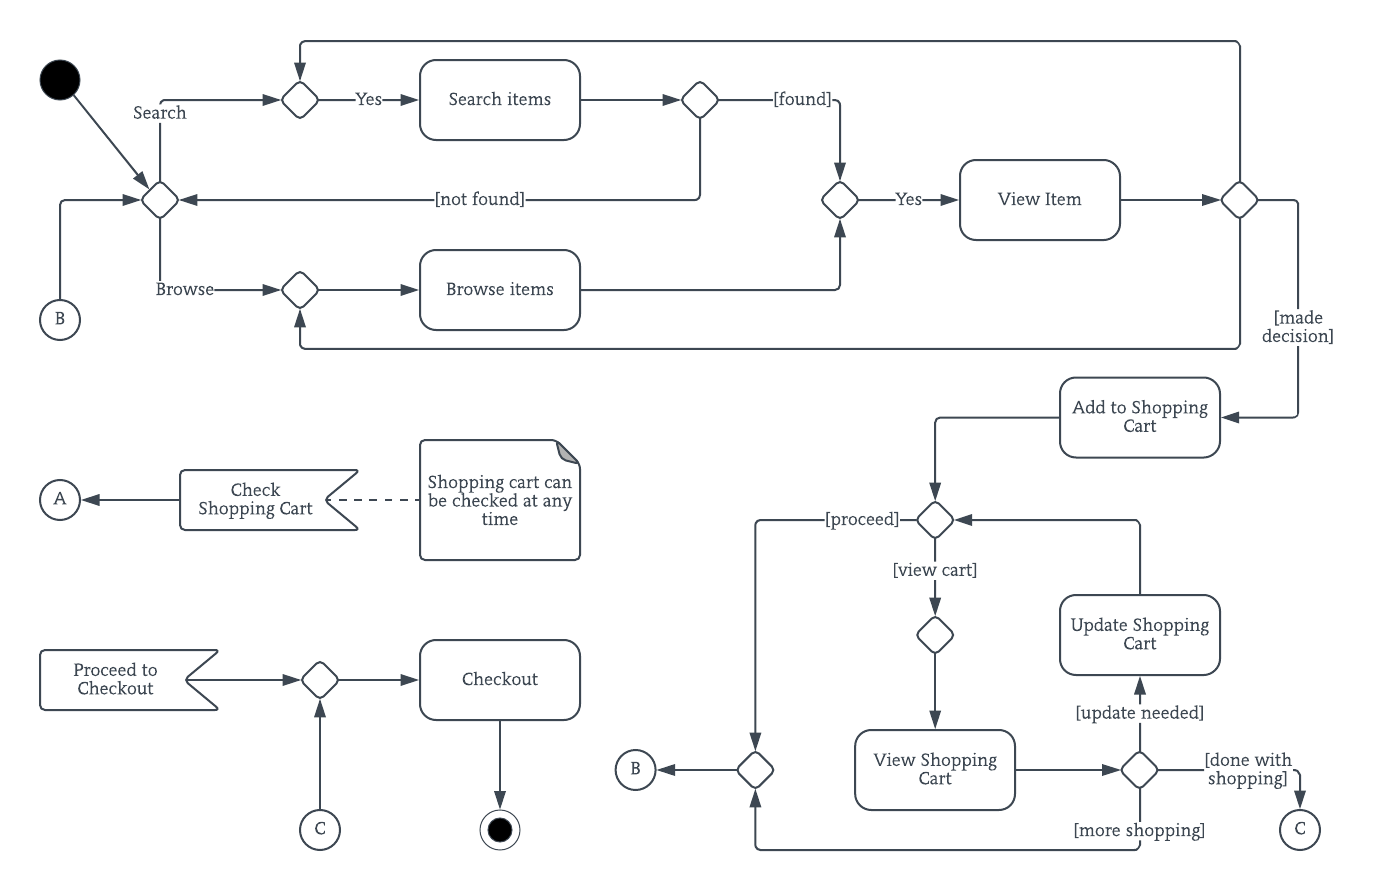 online shopping UML activity diagram template